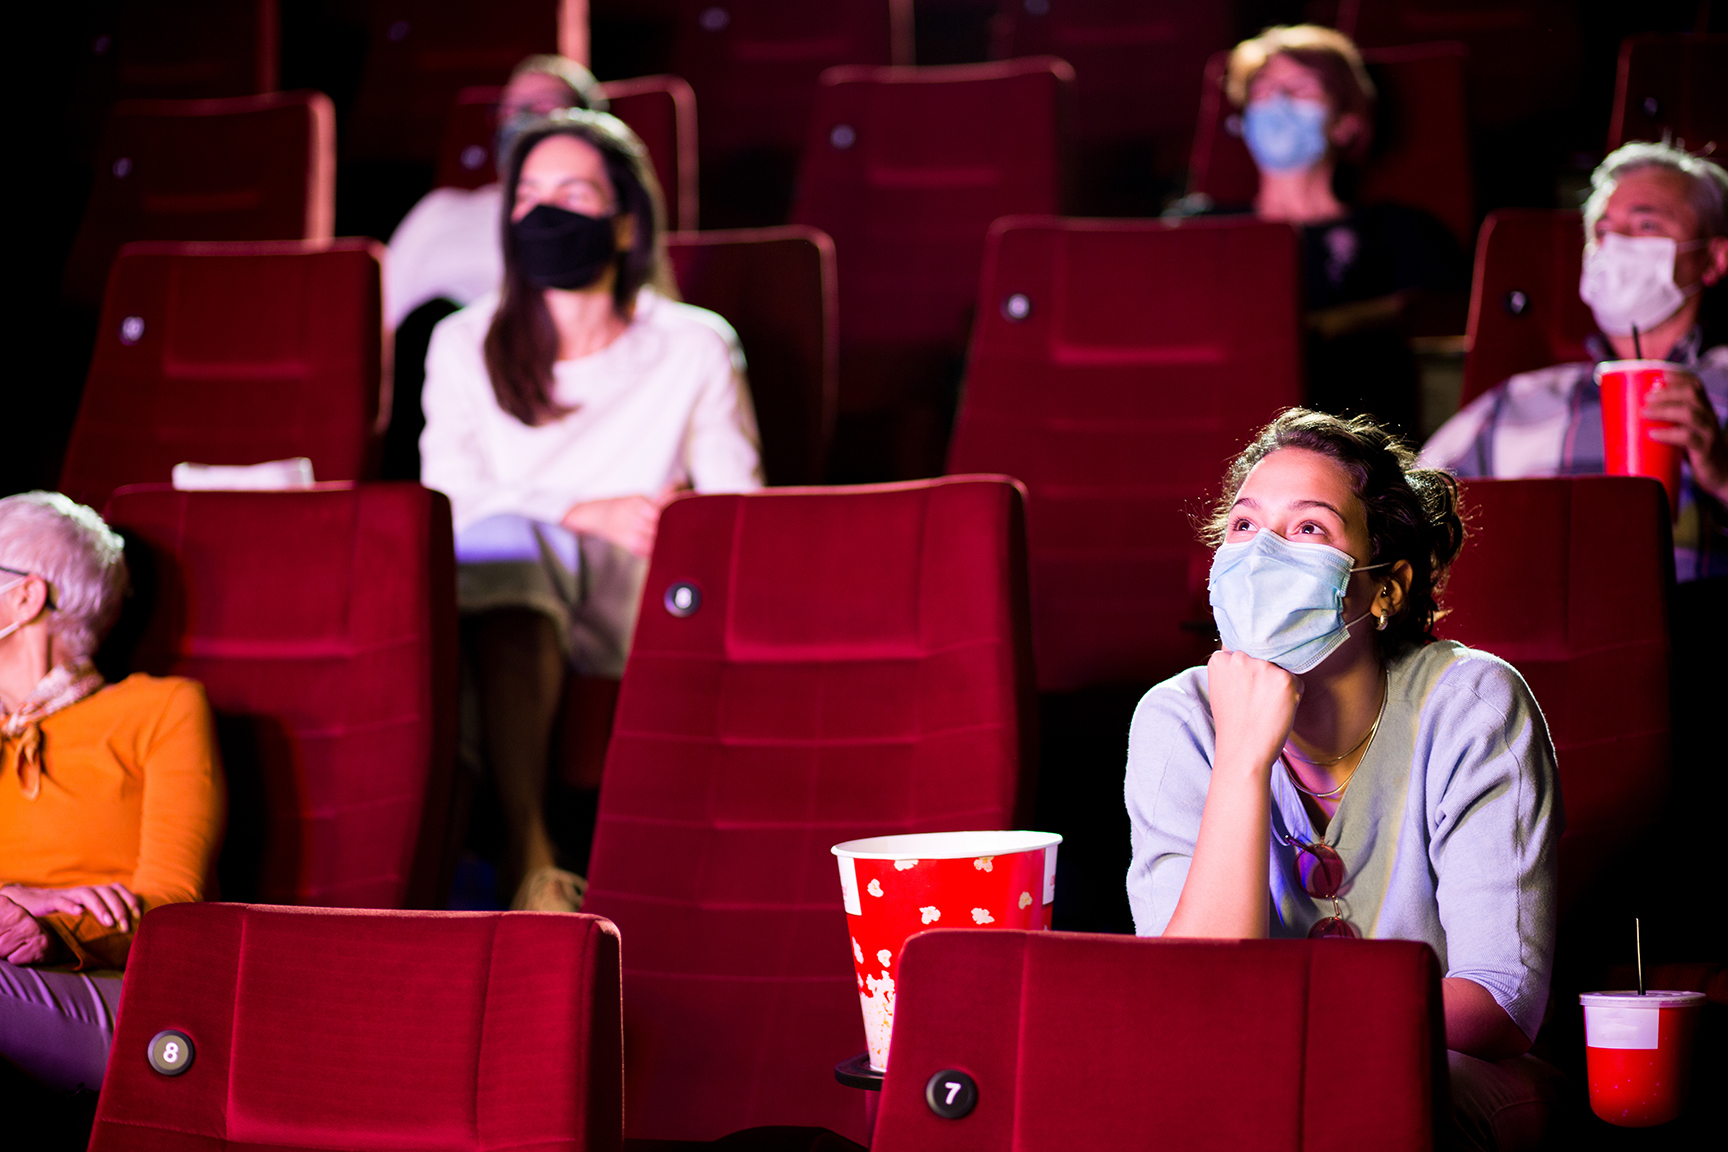 Audience at the cinema wearing protective face masks and sitting on a distance while watching the movie.